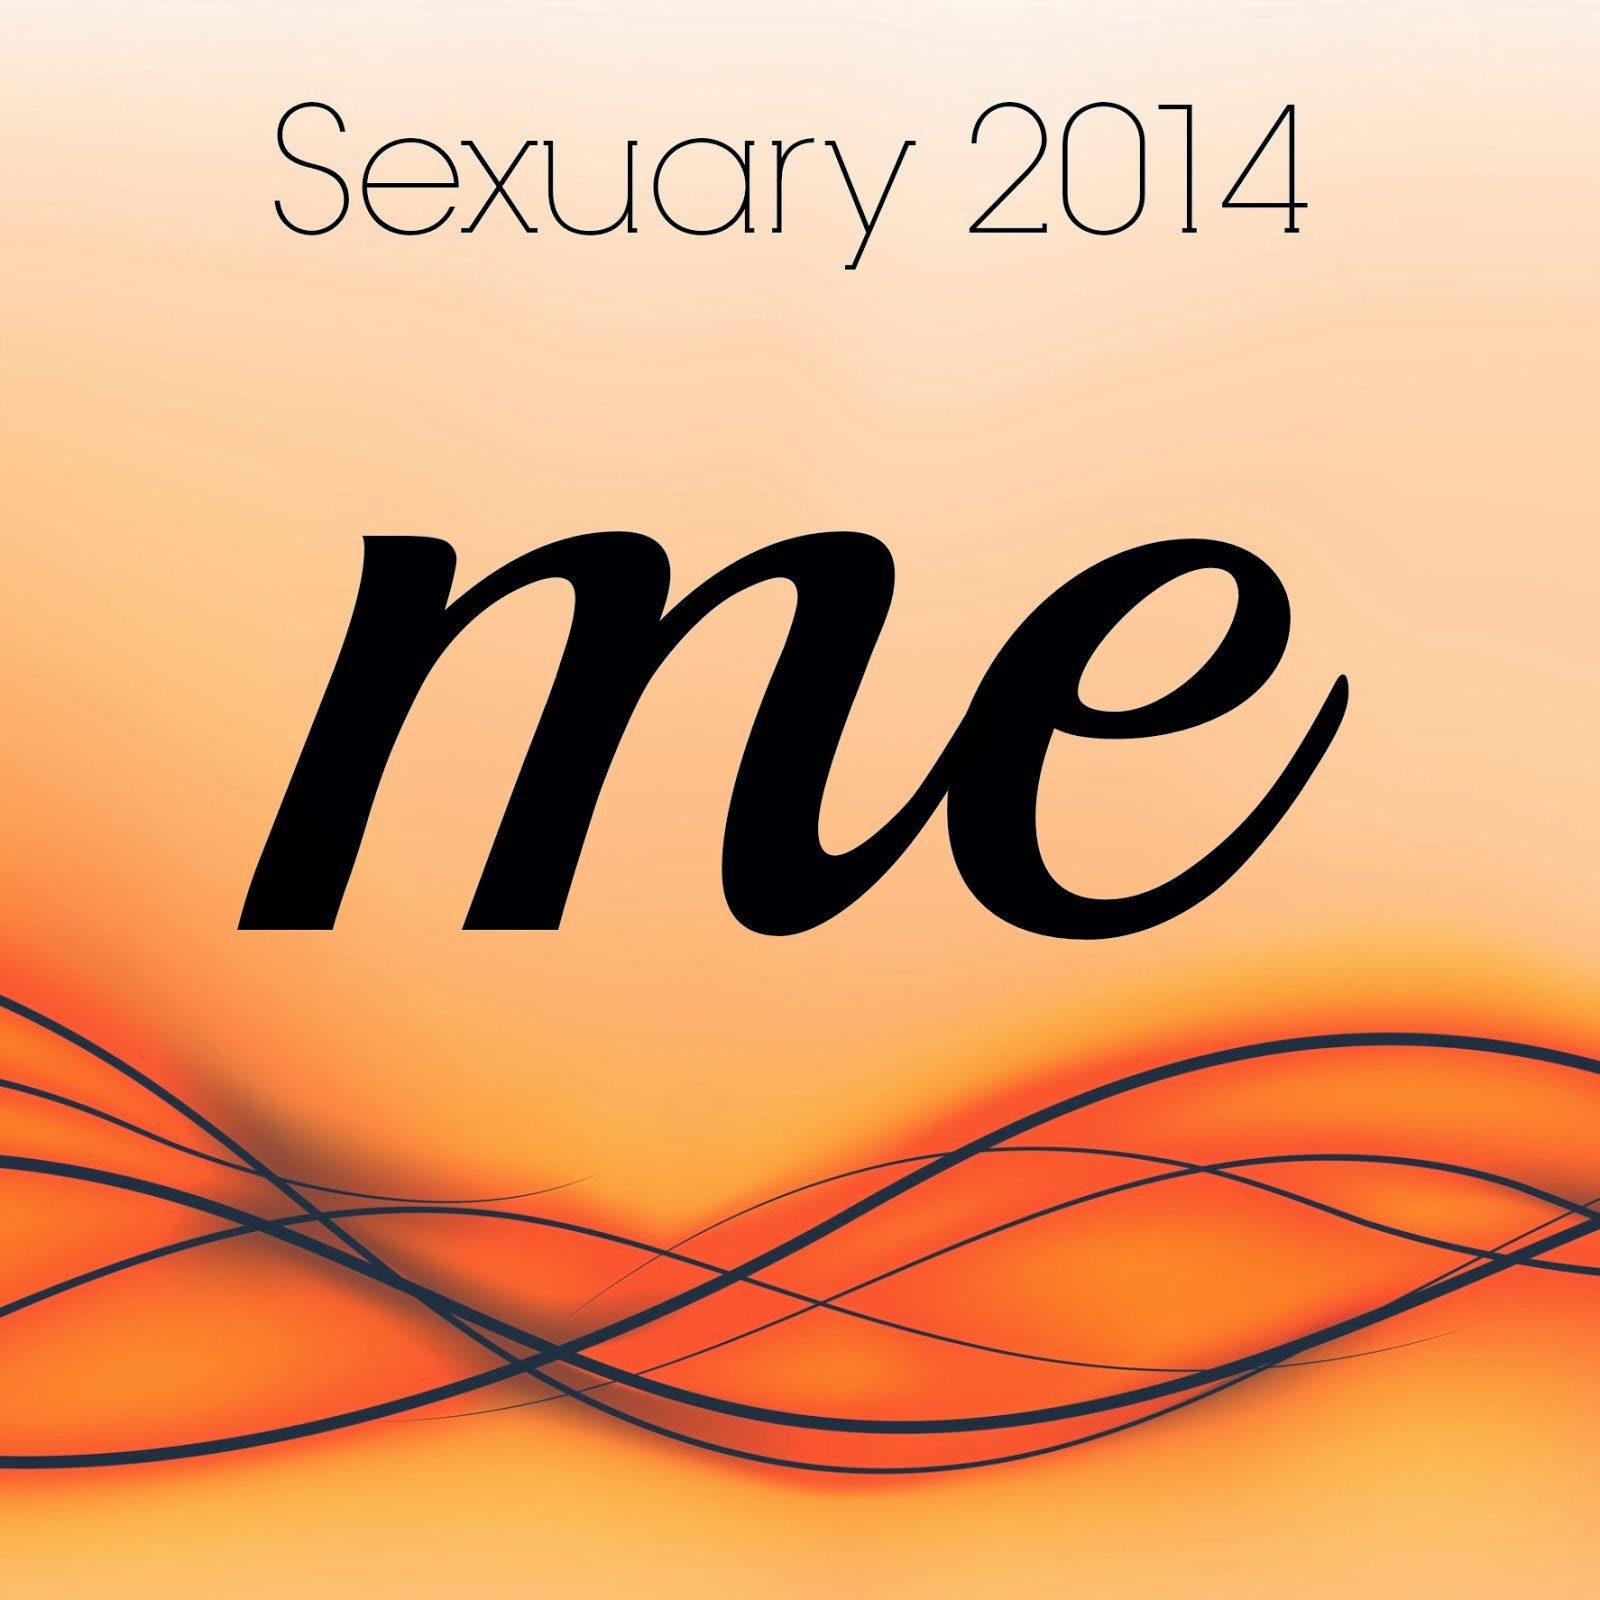 http://www.welcometomybrain.net/2014/01/sexuary-2014-year-of-me.html